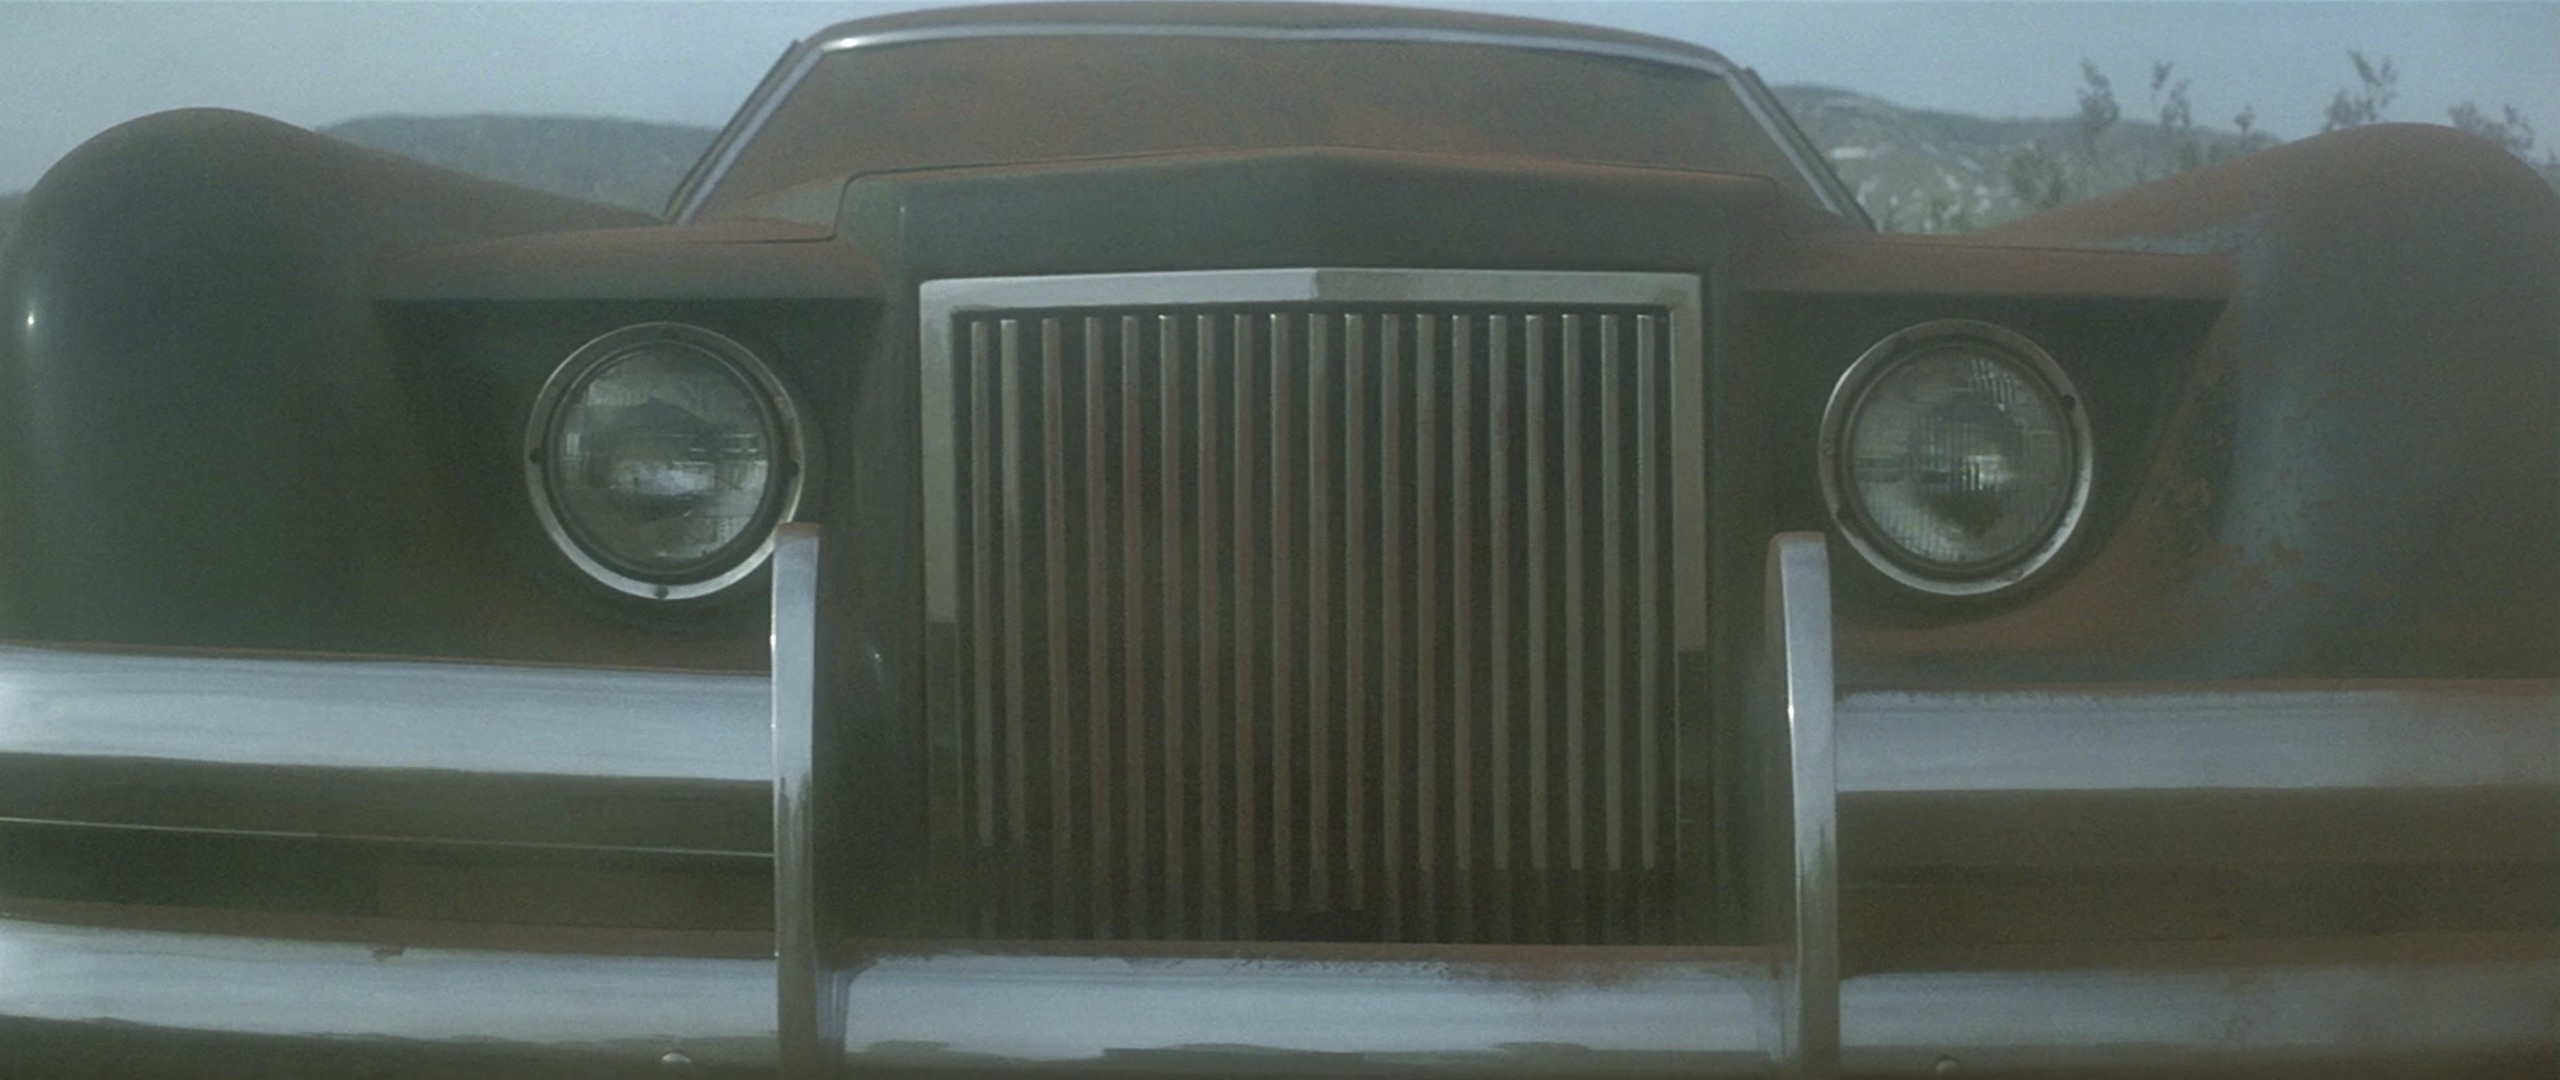 1971 Lincoln Continental Mark III grille